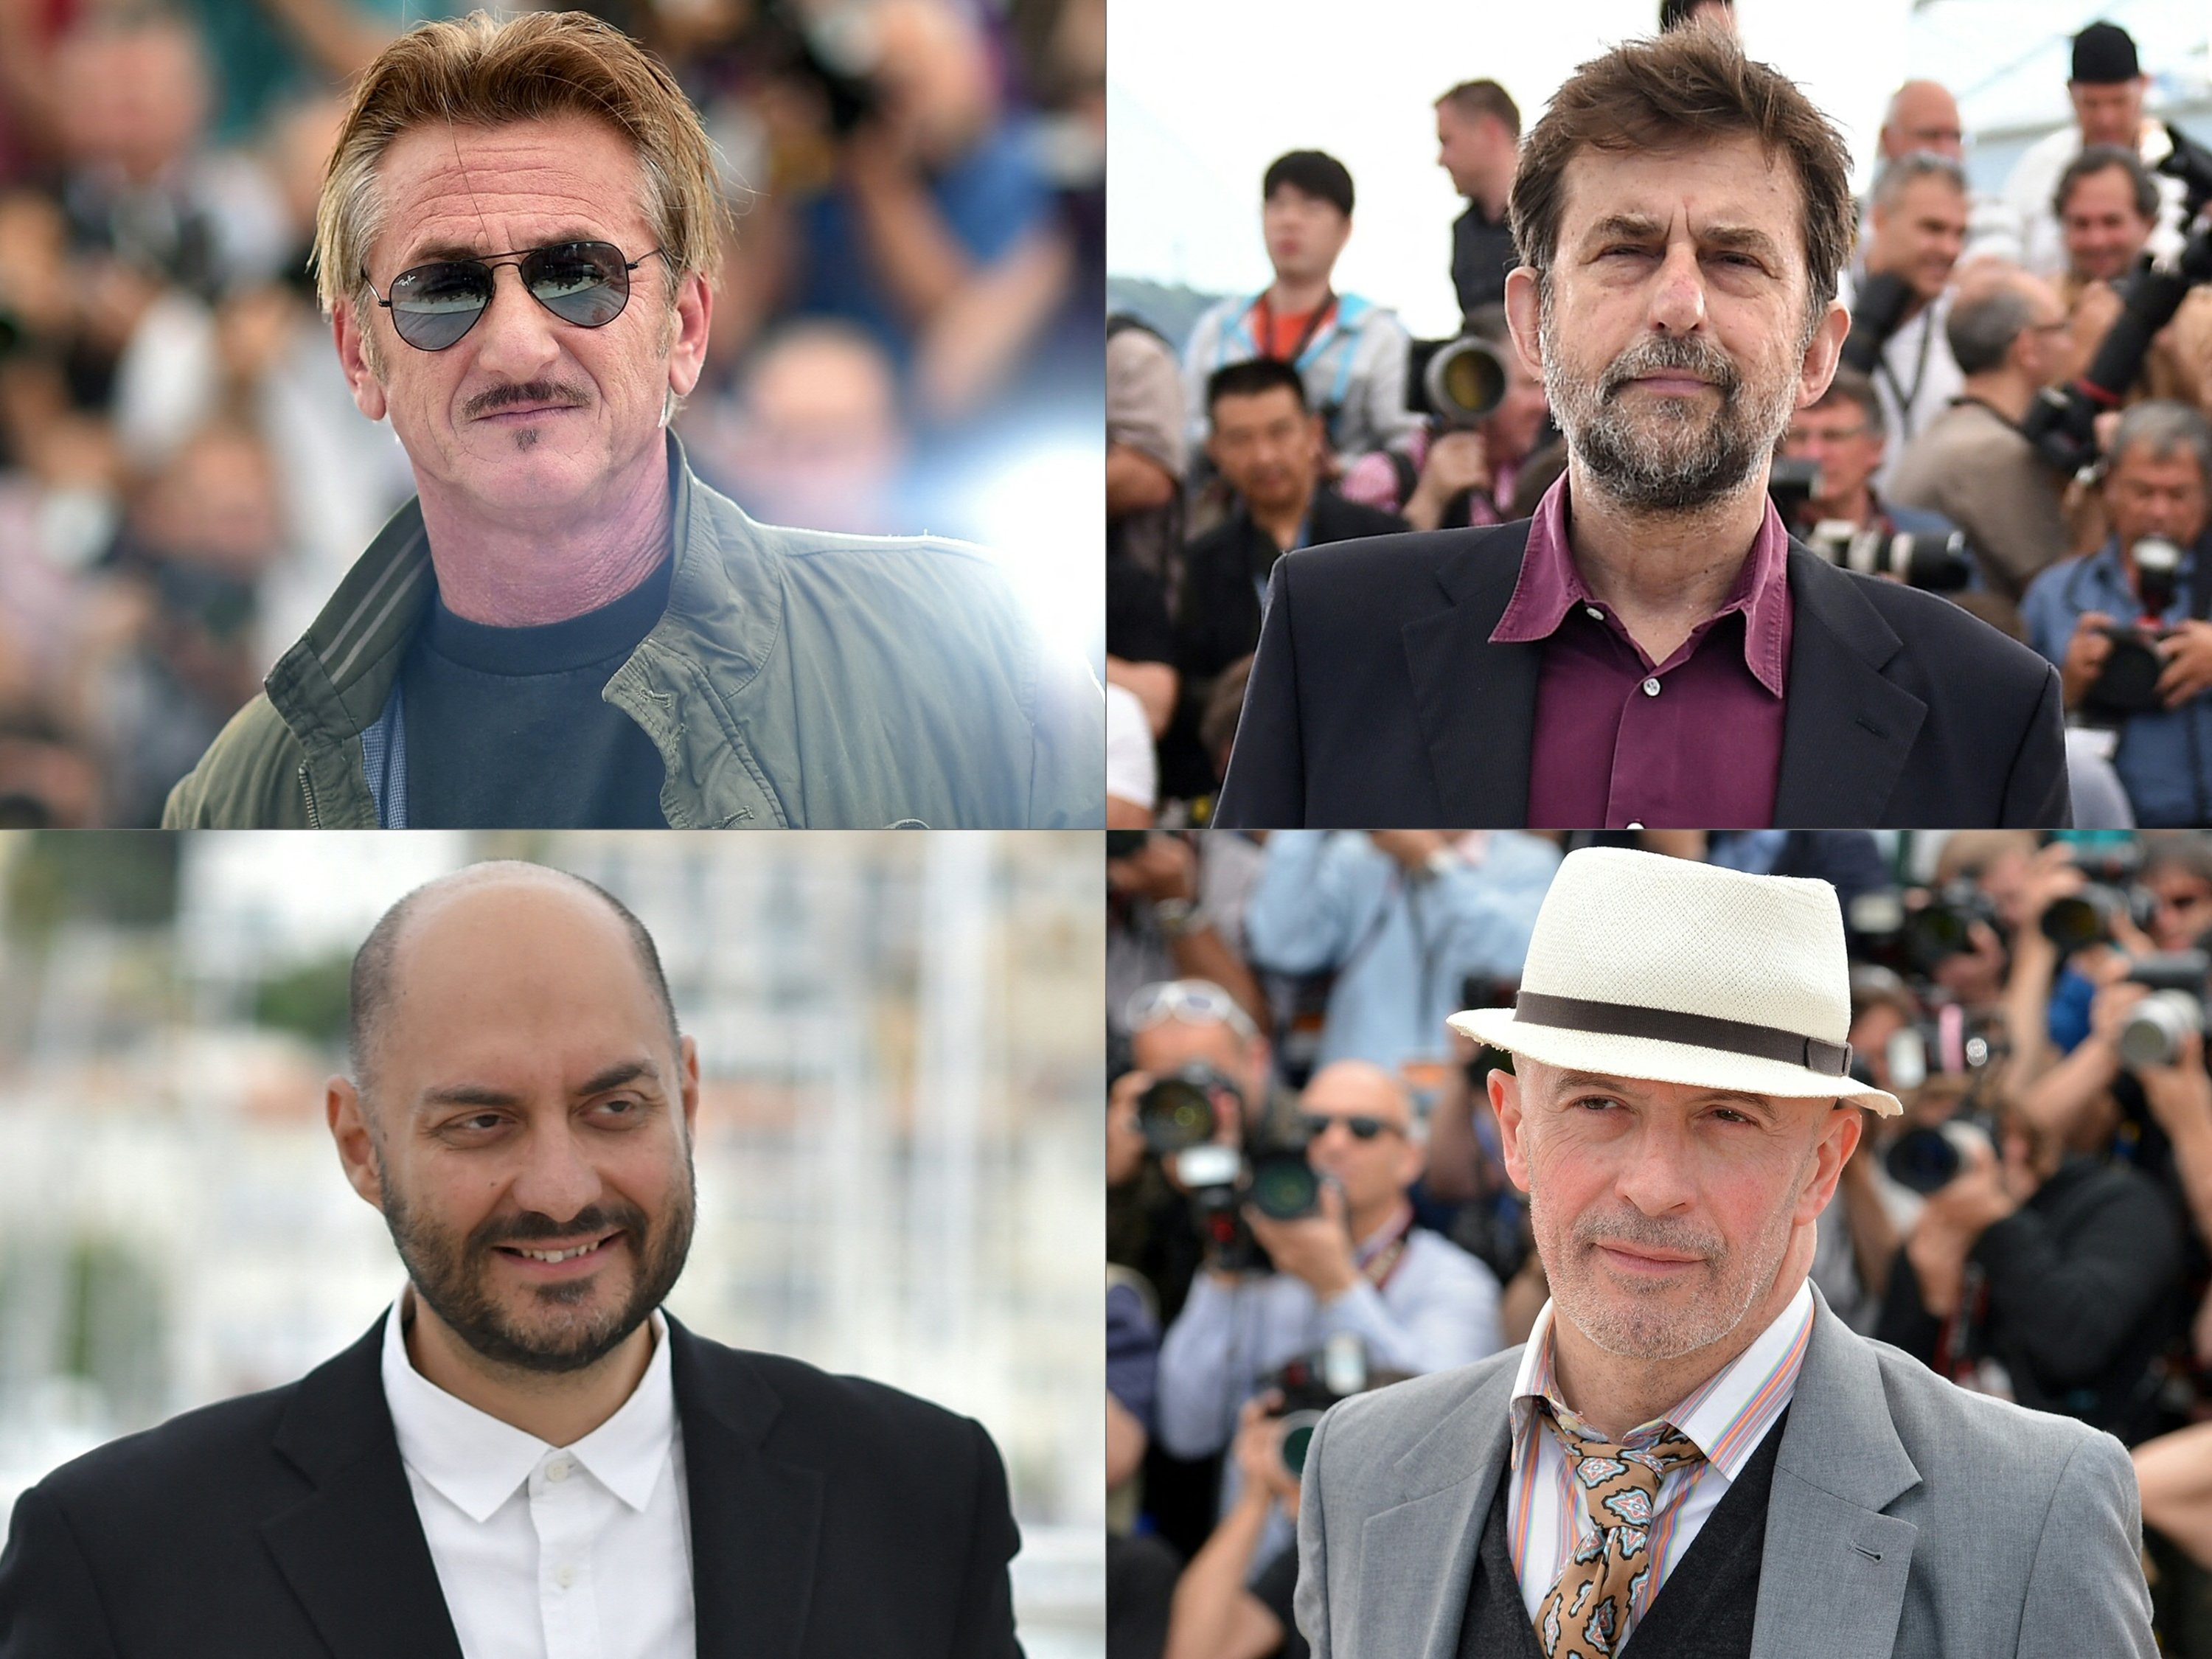 A collage of pictures shows American actor and director Sean Penn (L-T), Italy's Nanni Moretti (R-T), Russia's Kirill Serebrennikov (L-B) and France'sJacques Audiard (R-B), all competingat the Cannes Film Festival in July. (AFP Photo)